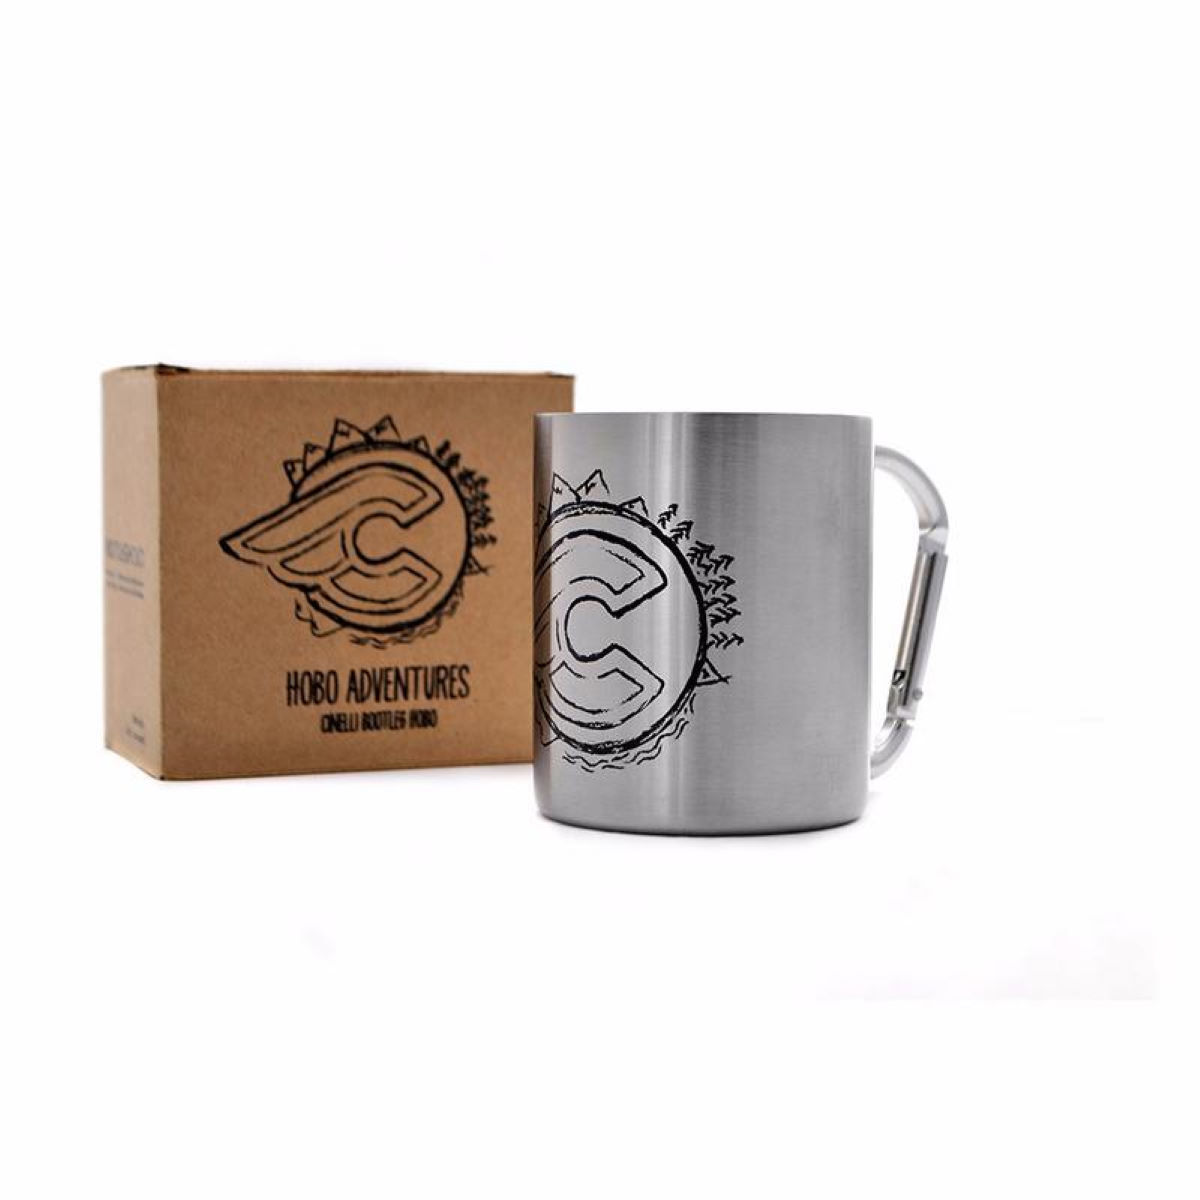 Cinelli Alloy Drinks Mug - Regalos